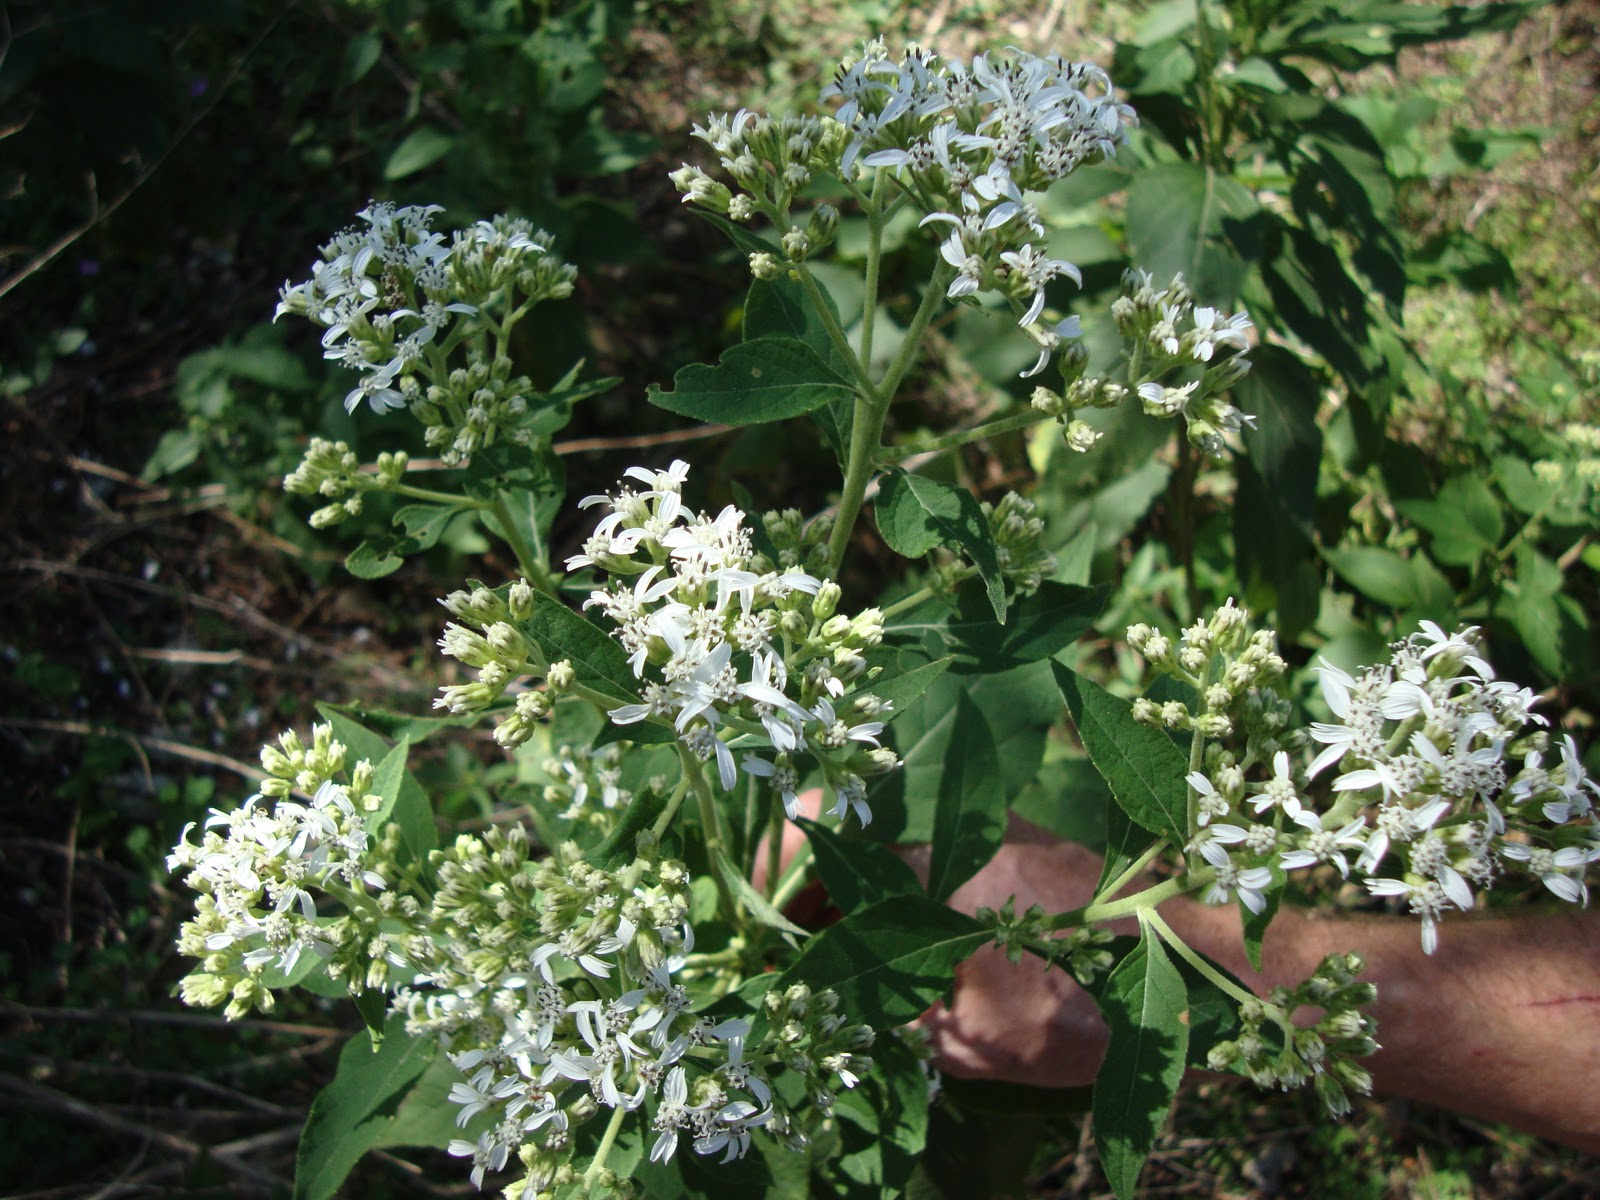 Where plants rule fall wildflowers frostweed plants grow at the edges of woodlands and bloom august through november attracting butterflies with their white flowers mightylinksfo